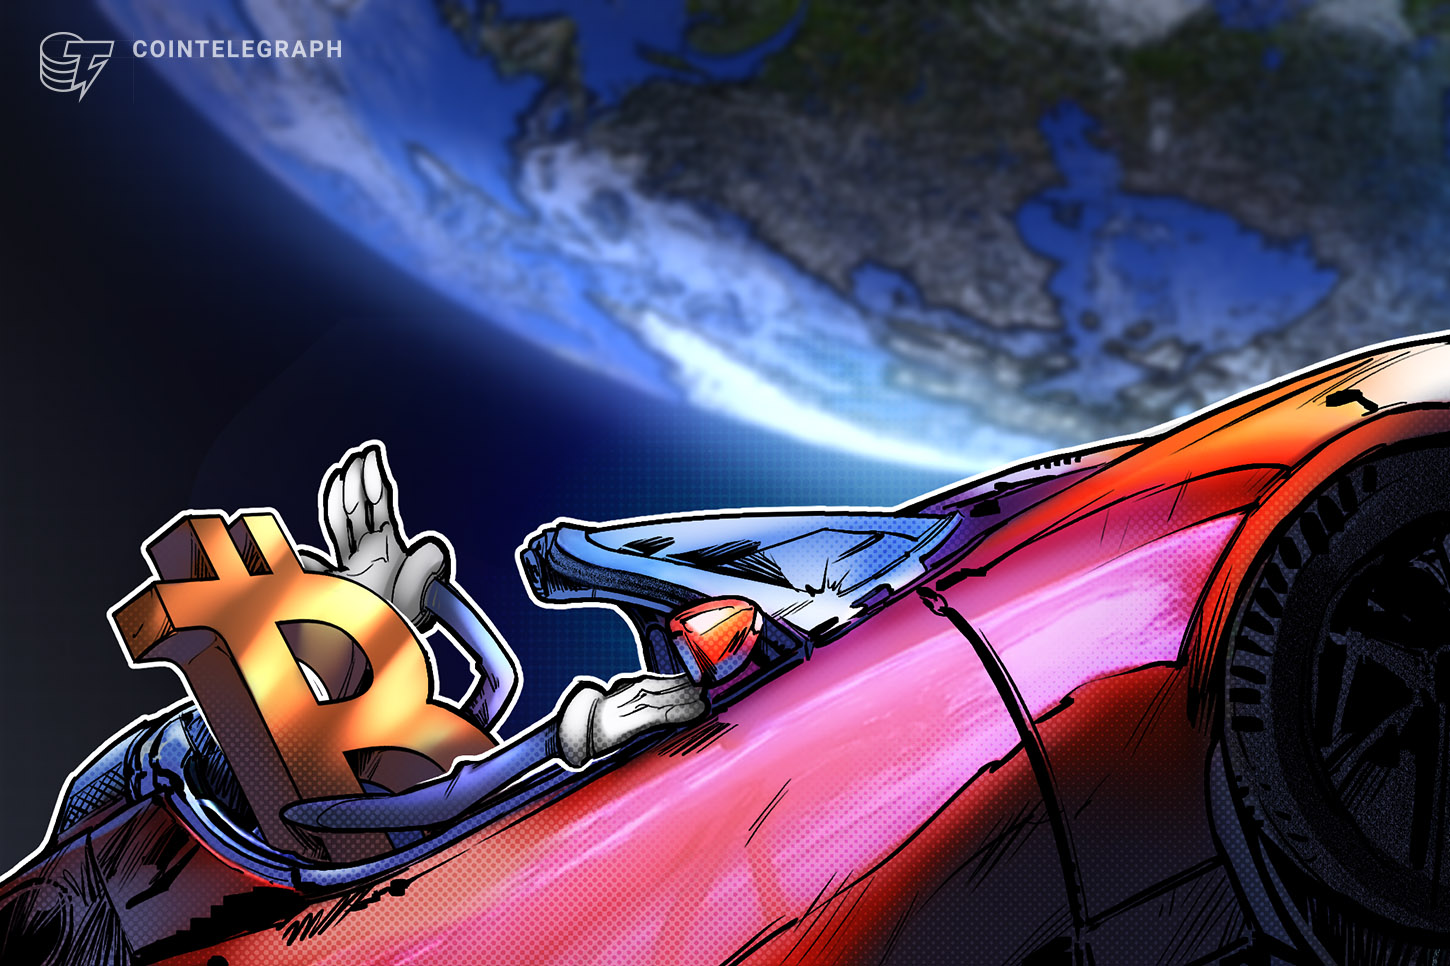 Number of Bitcoin wallets holding 100-1K BTC soars after Tesla's $1.5B buy-in